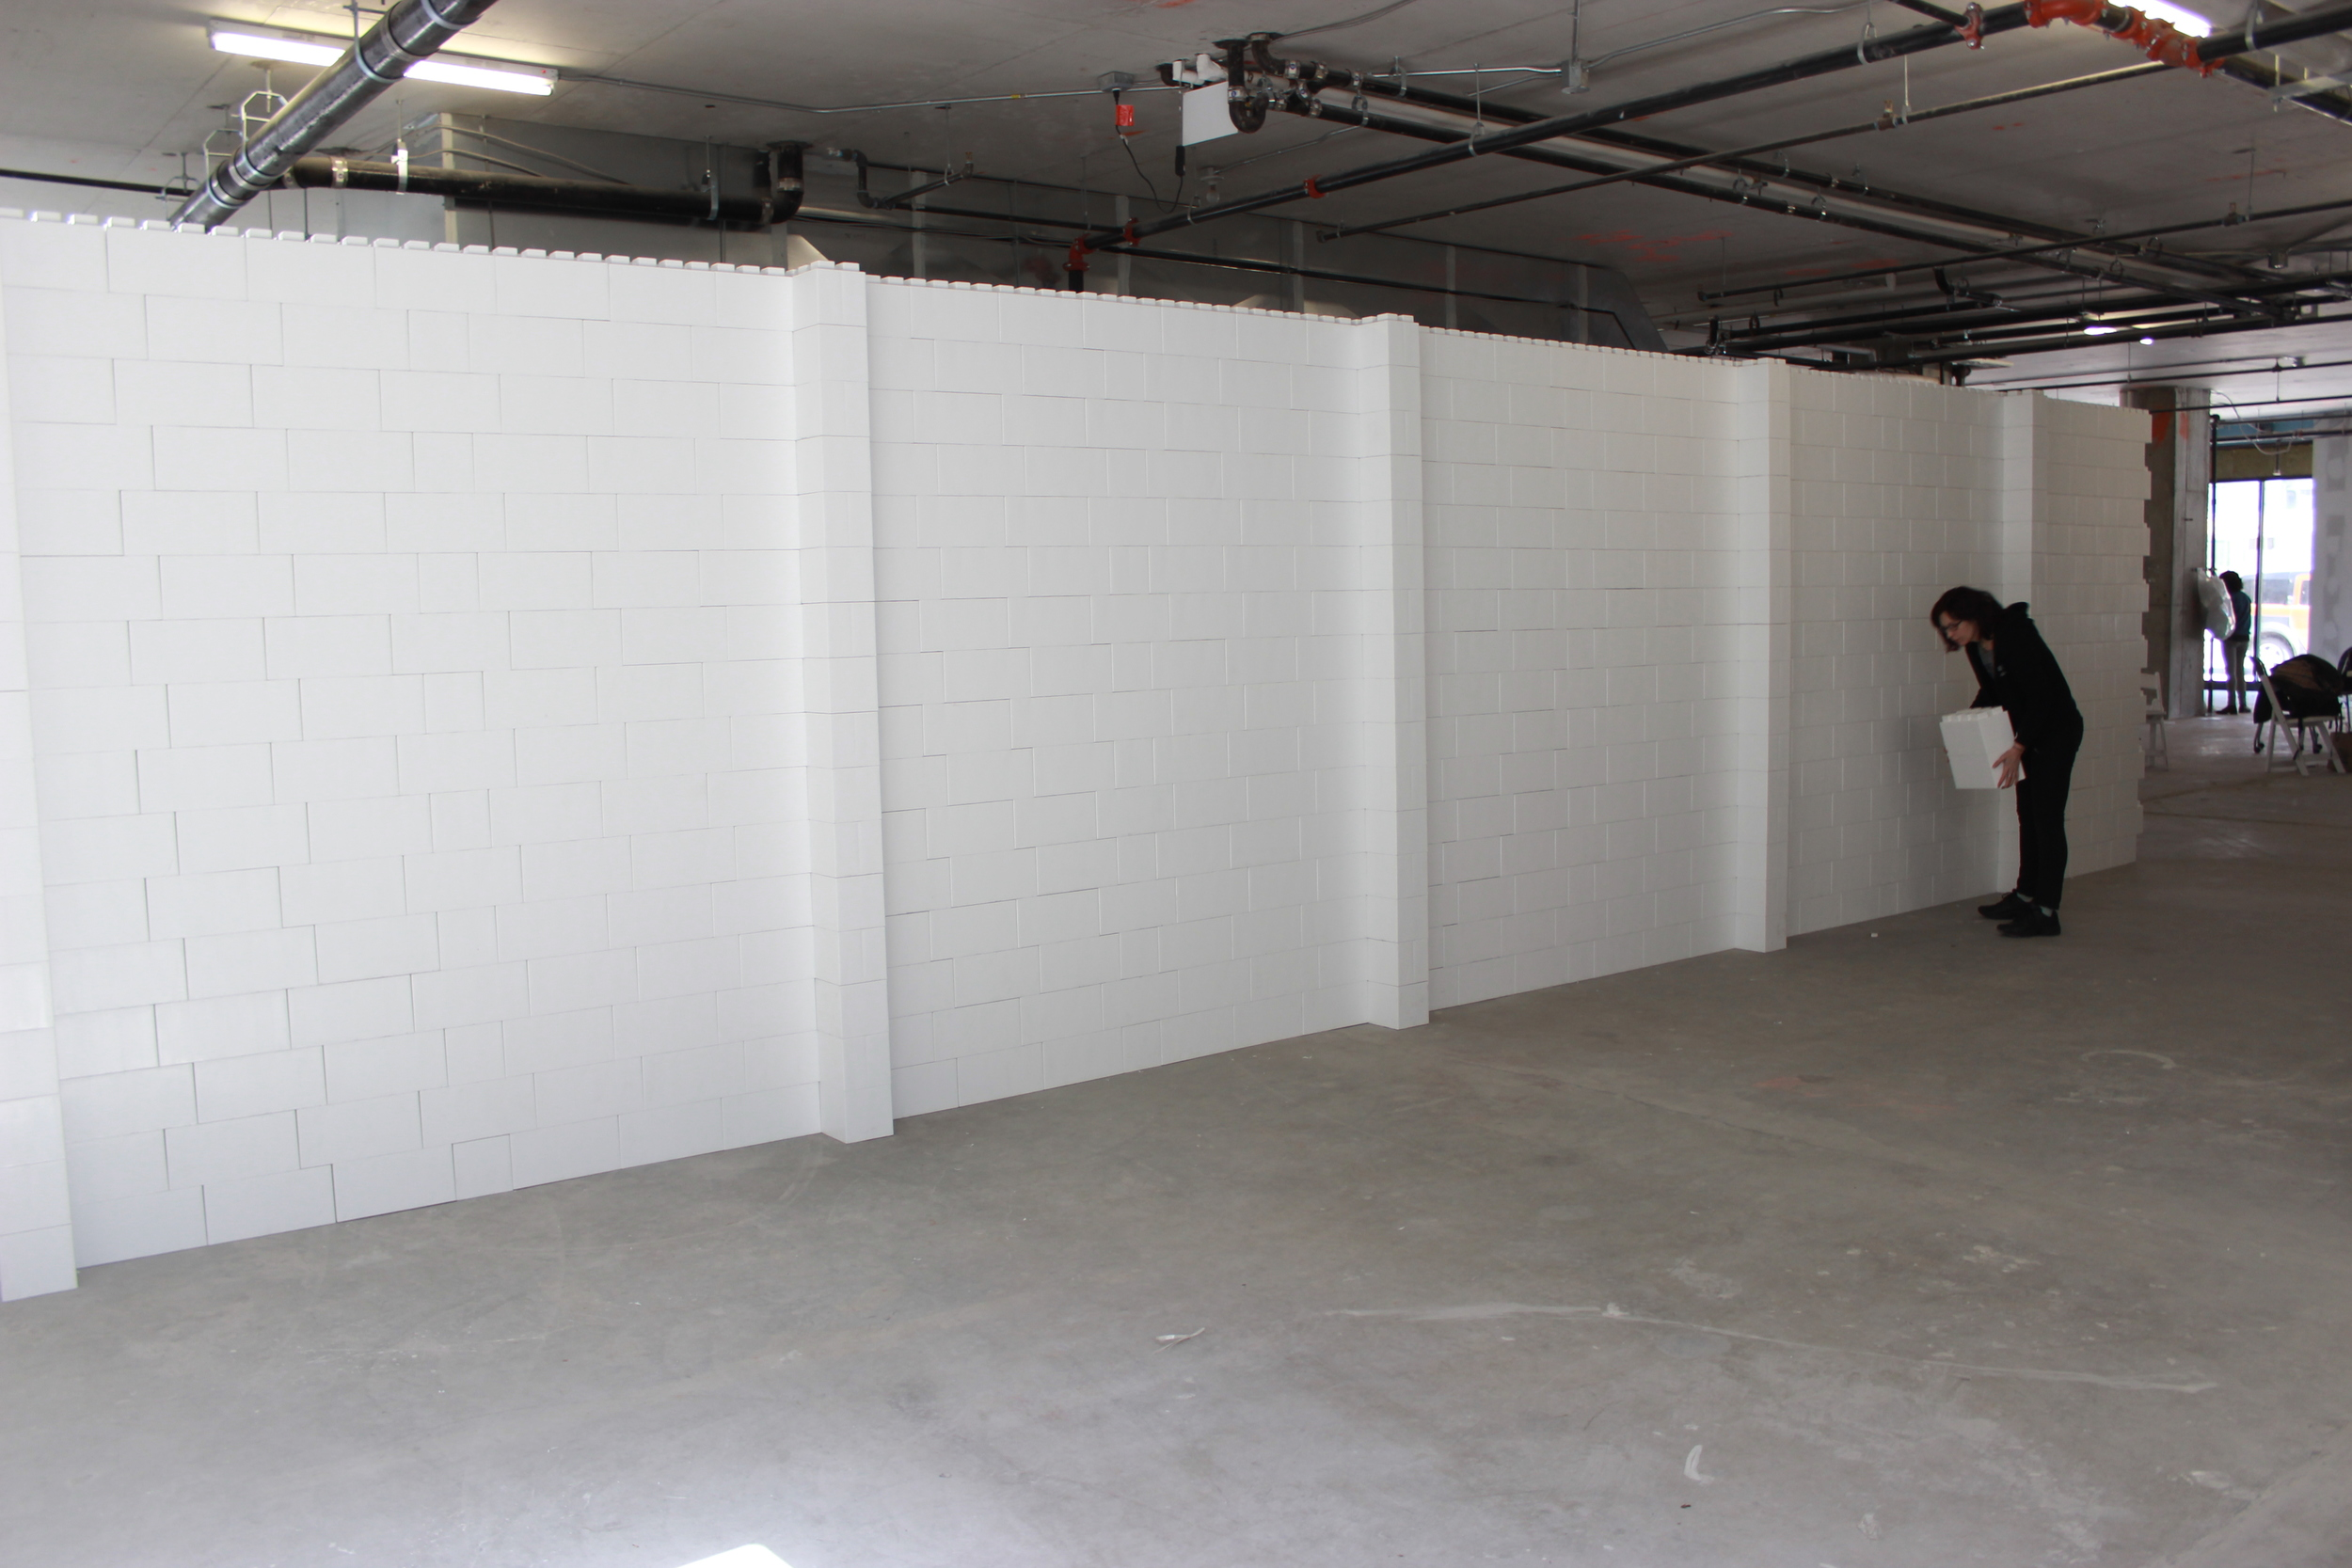 Divide loft spaces, convention halls, and other areas. Create crisp display walls for art galleries, conference room divider walls, and event space delineation walls.